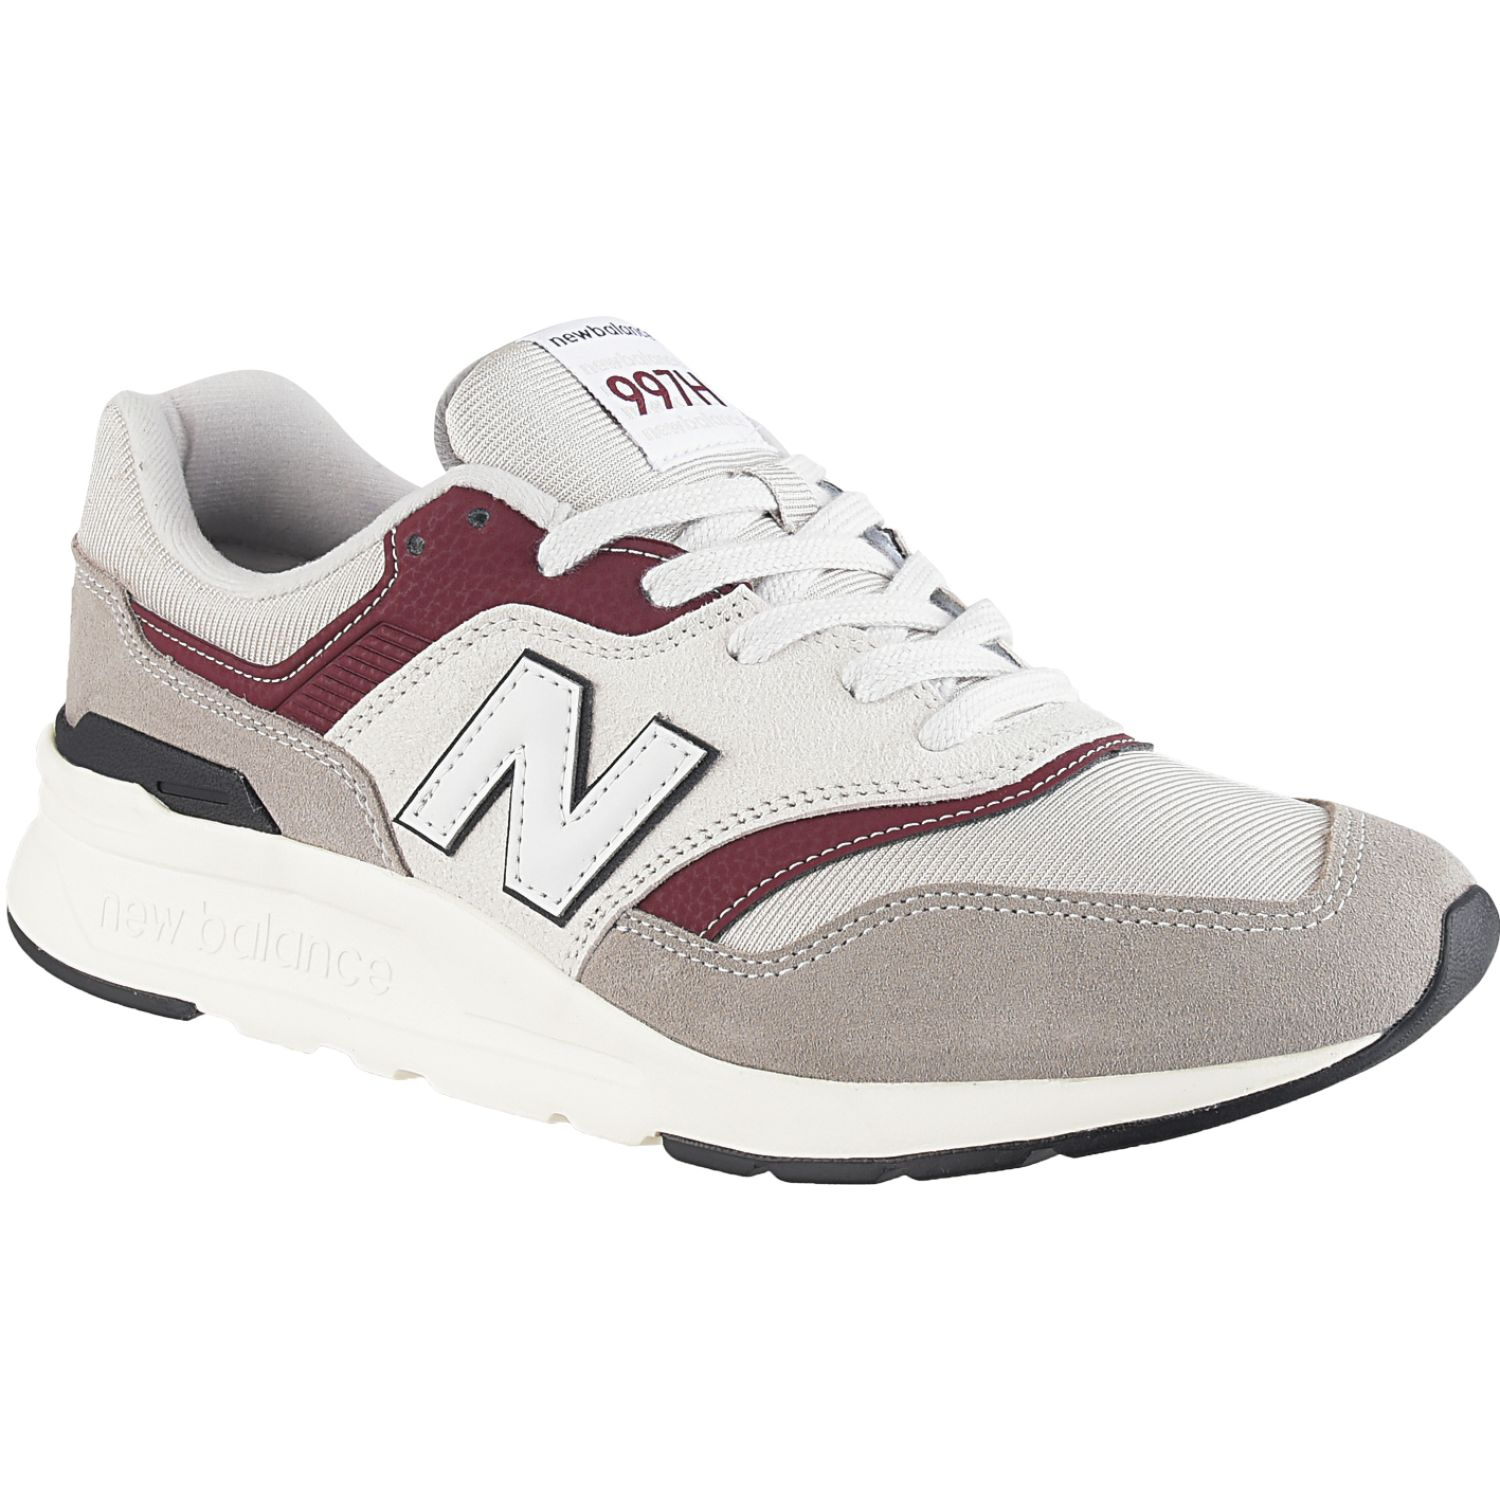 New Balance 997 BEIGE / ROSADO Walking